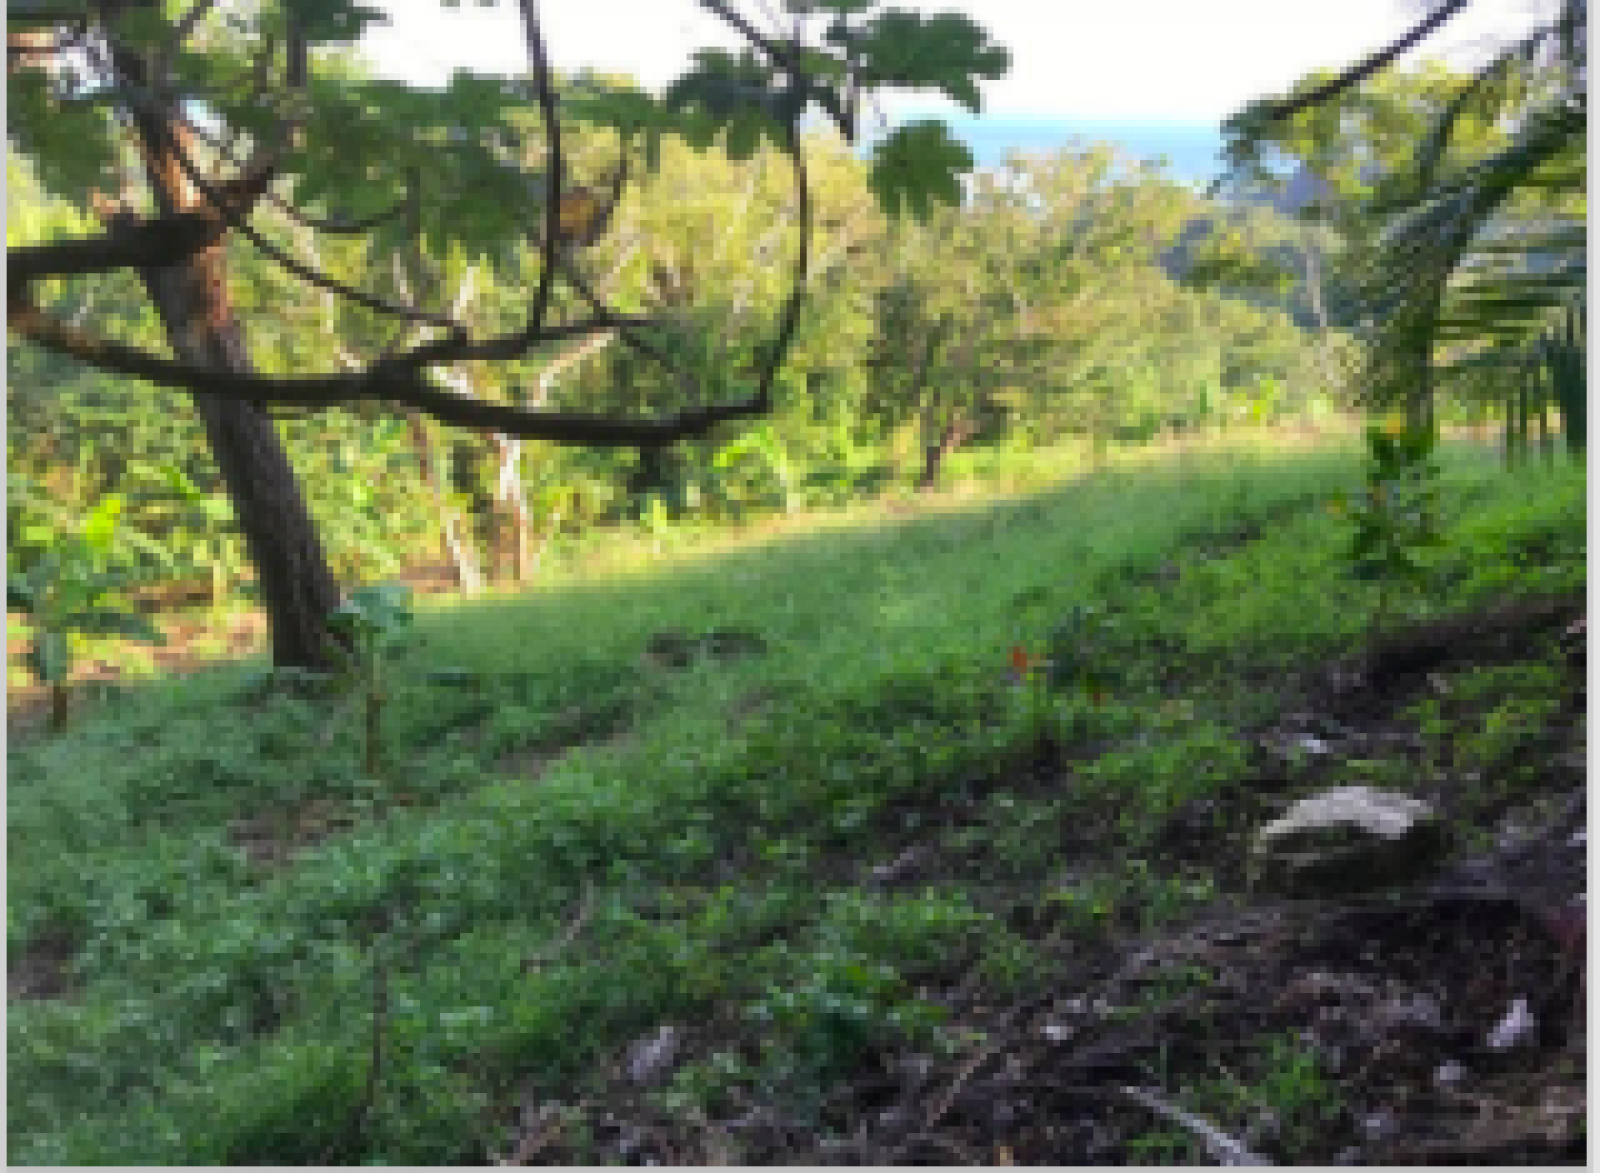 Gentle rolling hillside lot with glimpses of the ocean between the trees.